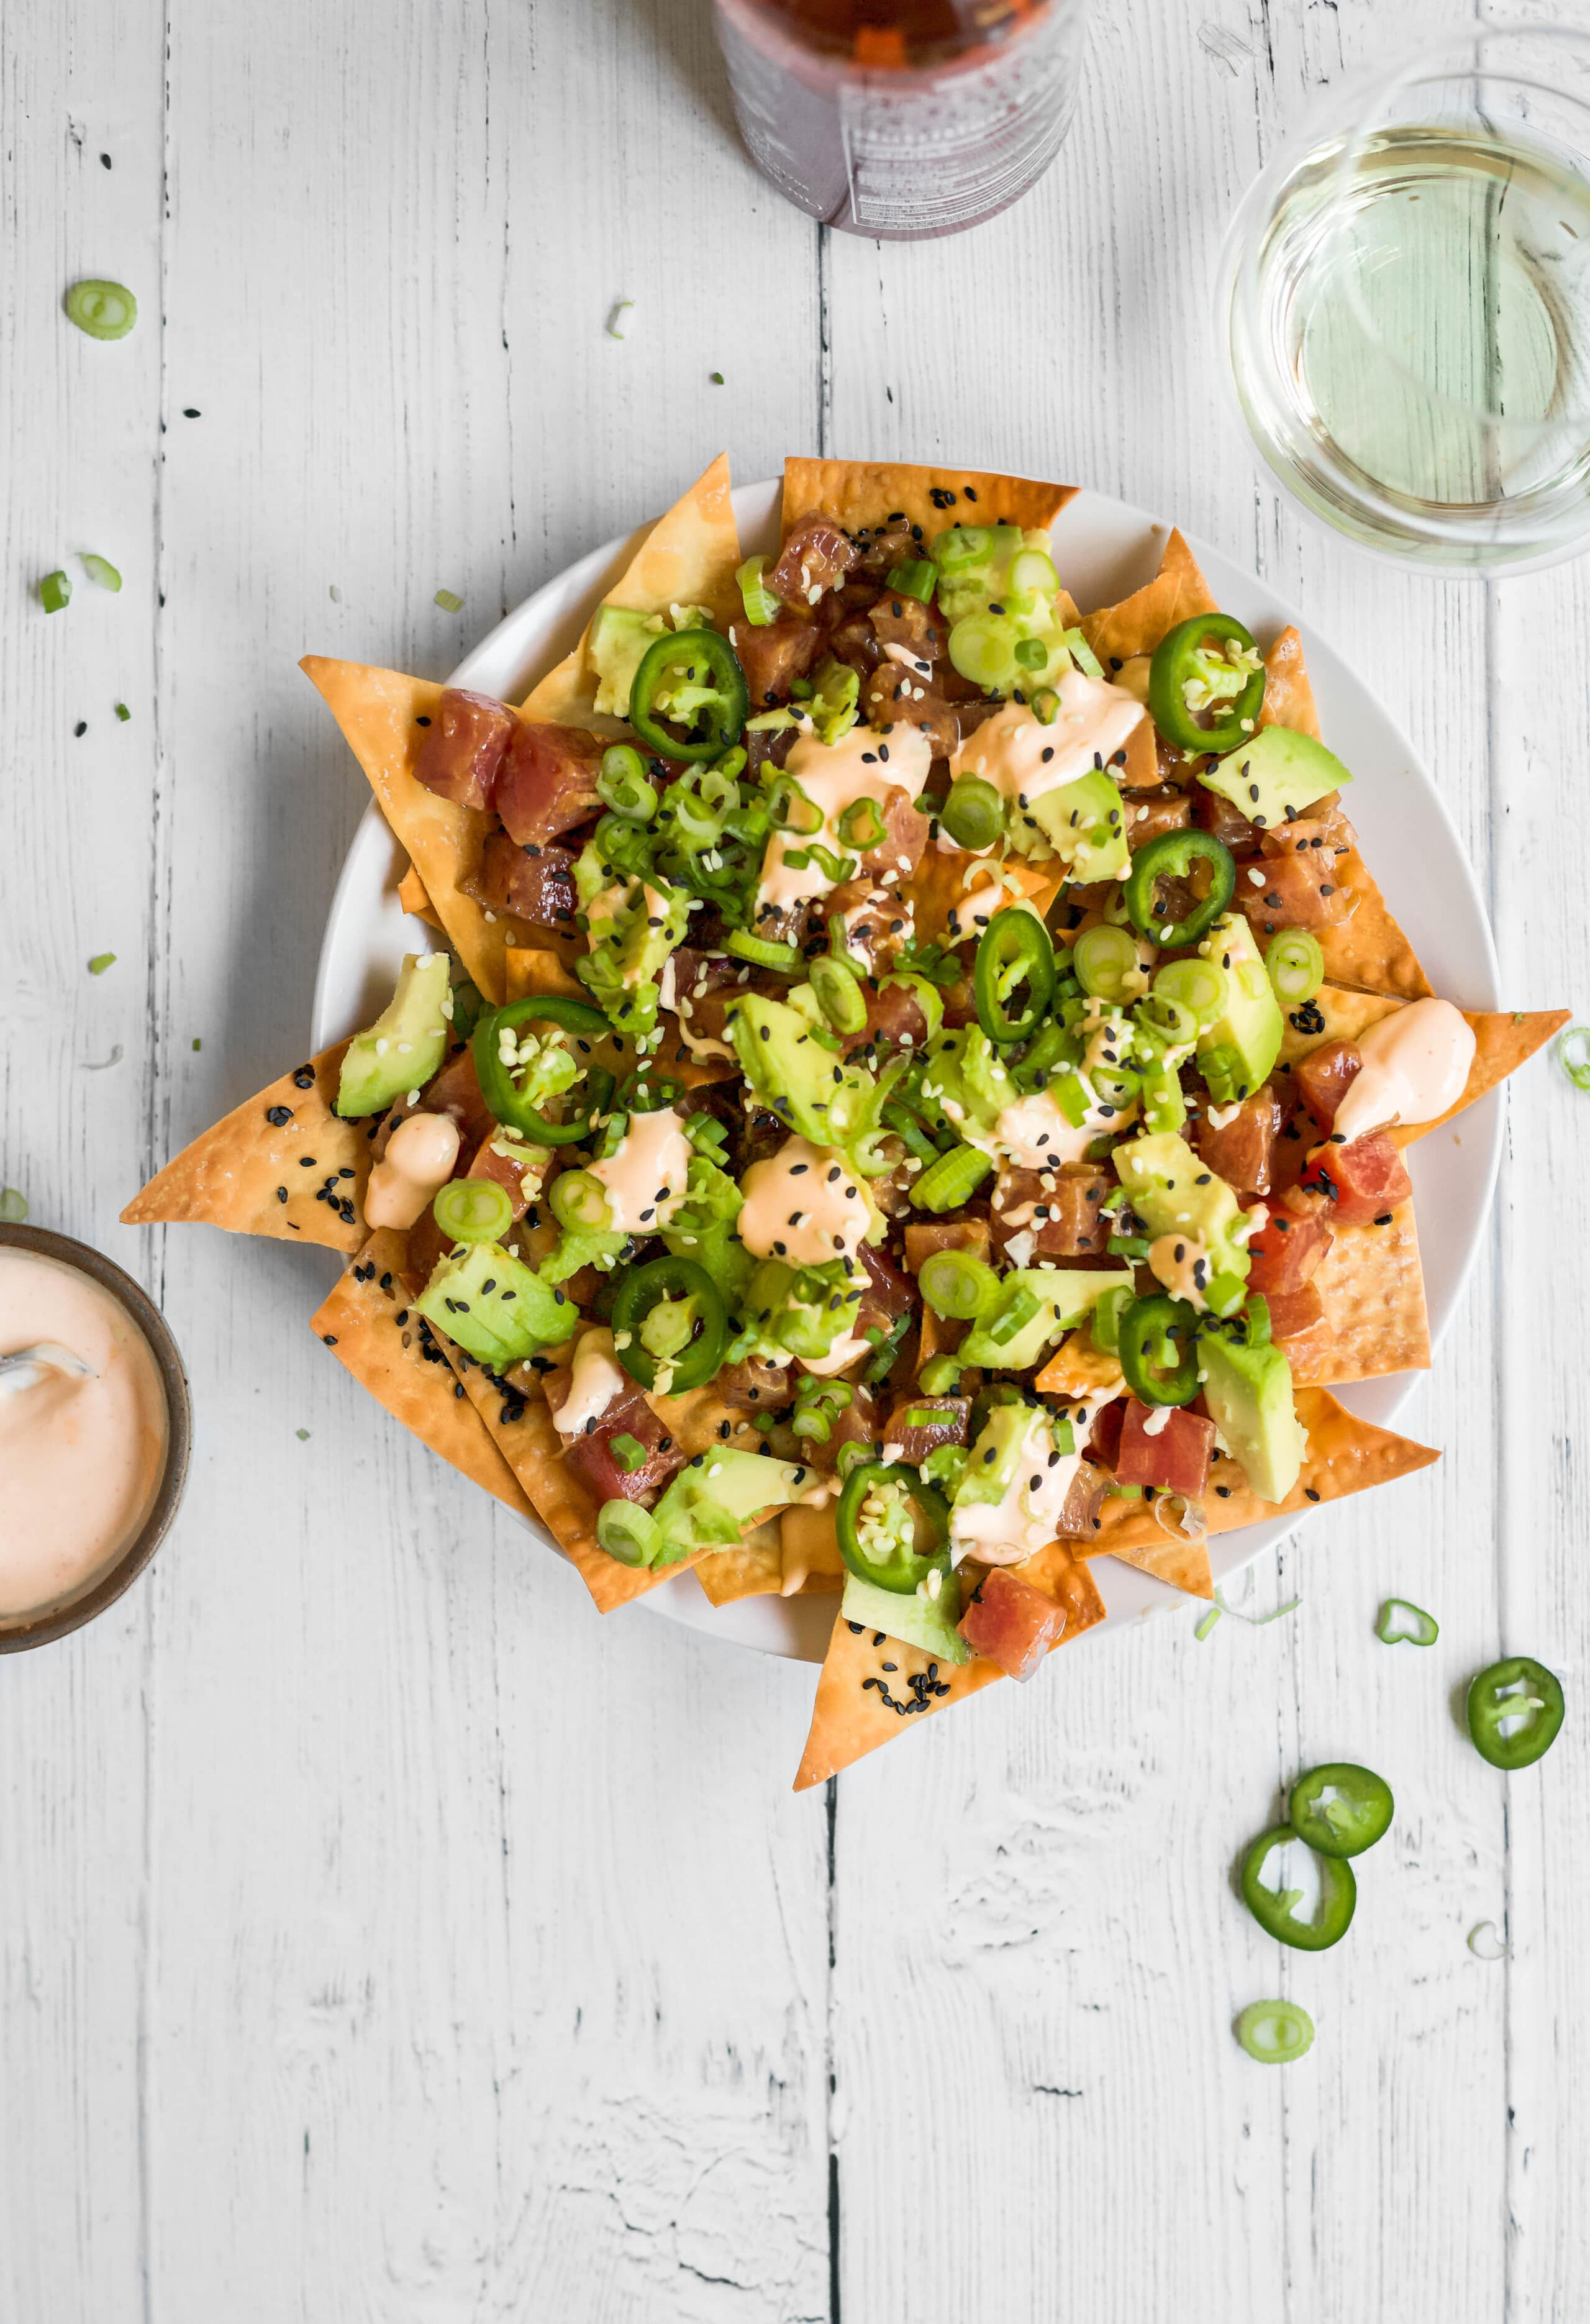 spicy tuna tartare nachos recipe :: baked, crispy wonton chips, spicy ahi tuna, creamy avocado, and spicy sriracha sauce. DELICIOUS and perfect for happy hour at home or date night in! spicy tuna tartare nachos | a flavor journal food blog